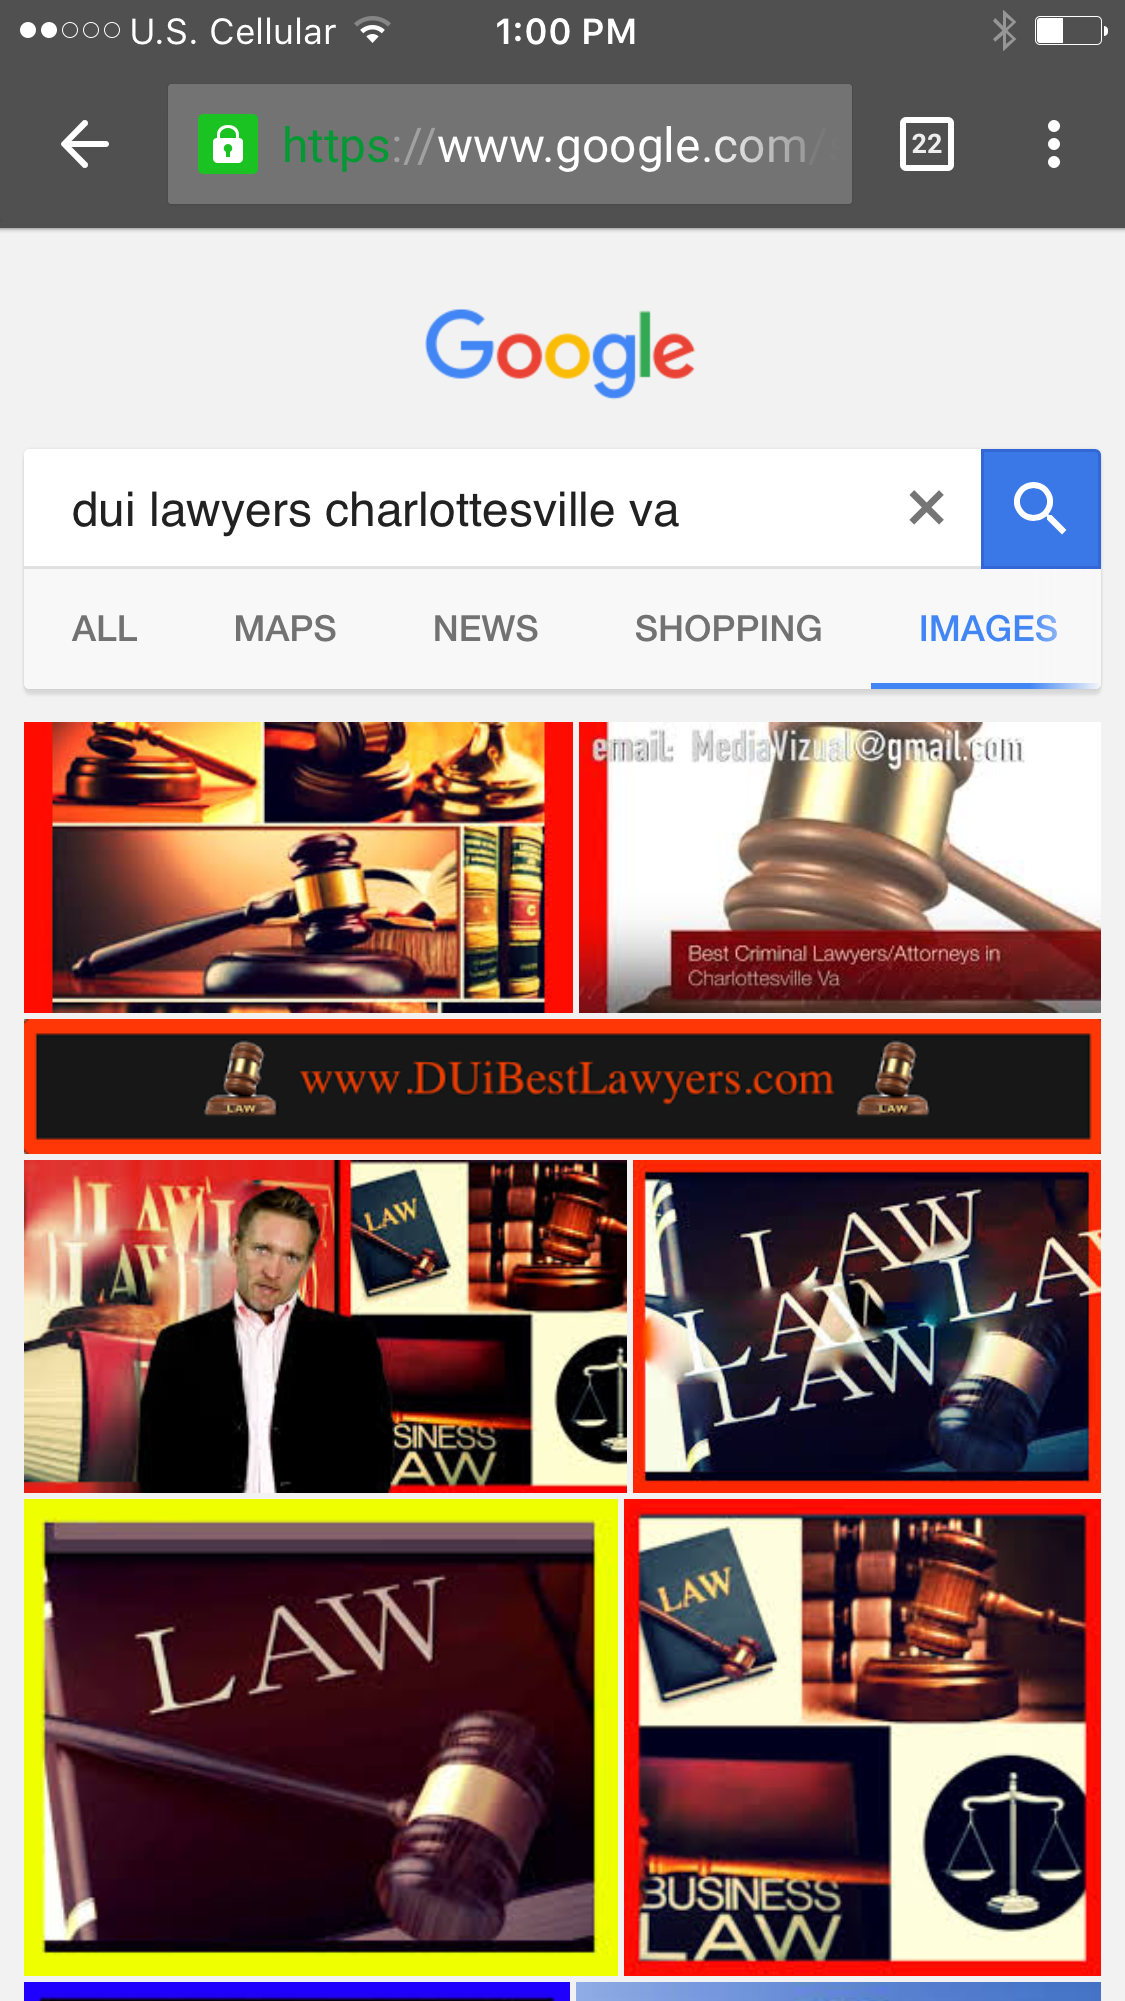 BEST  DUI  Lawyers and Attorneys in Richmond Virginia.  The best way to  market your law firm online, is to show up on the web results, the video results AND if you can mange to populate and engineer googles image reults for the best DUI LAWYERS IN RICHMOND Virginia, that's great Lawyer & Attorney Online Marketing http://www.DUIBESTLawyers.com